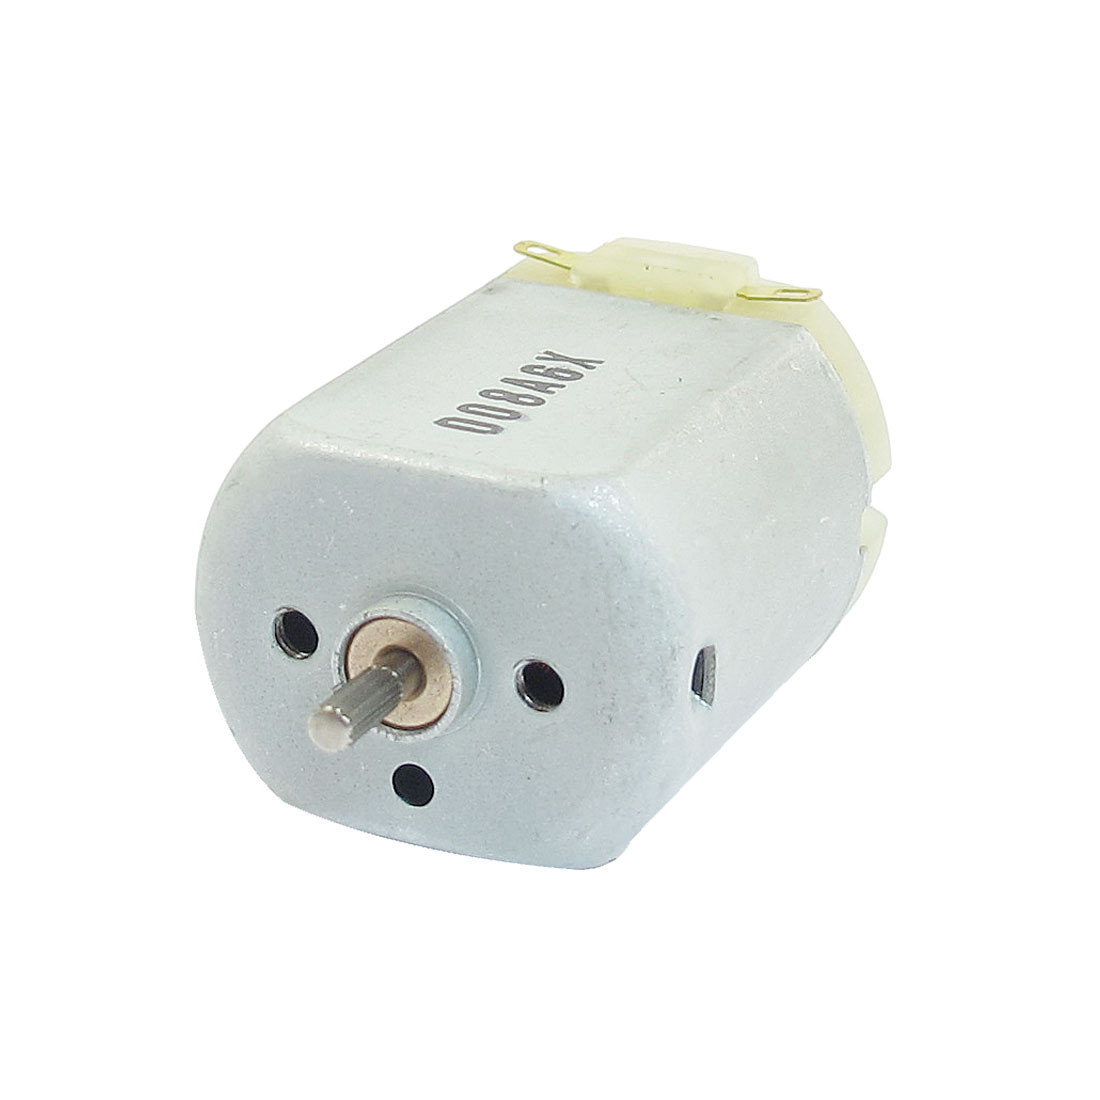 5200-21000RPM 3-12V High Torque Magnetic Electric Mini DC Motor